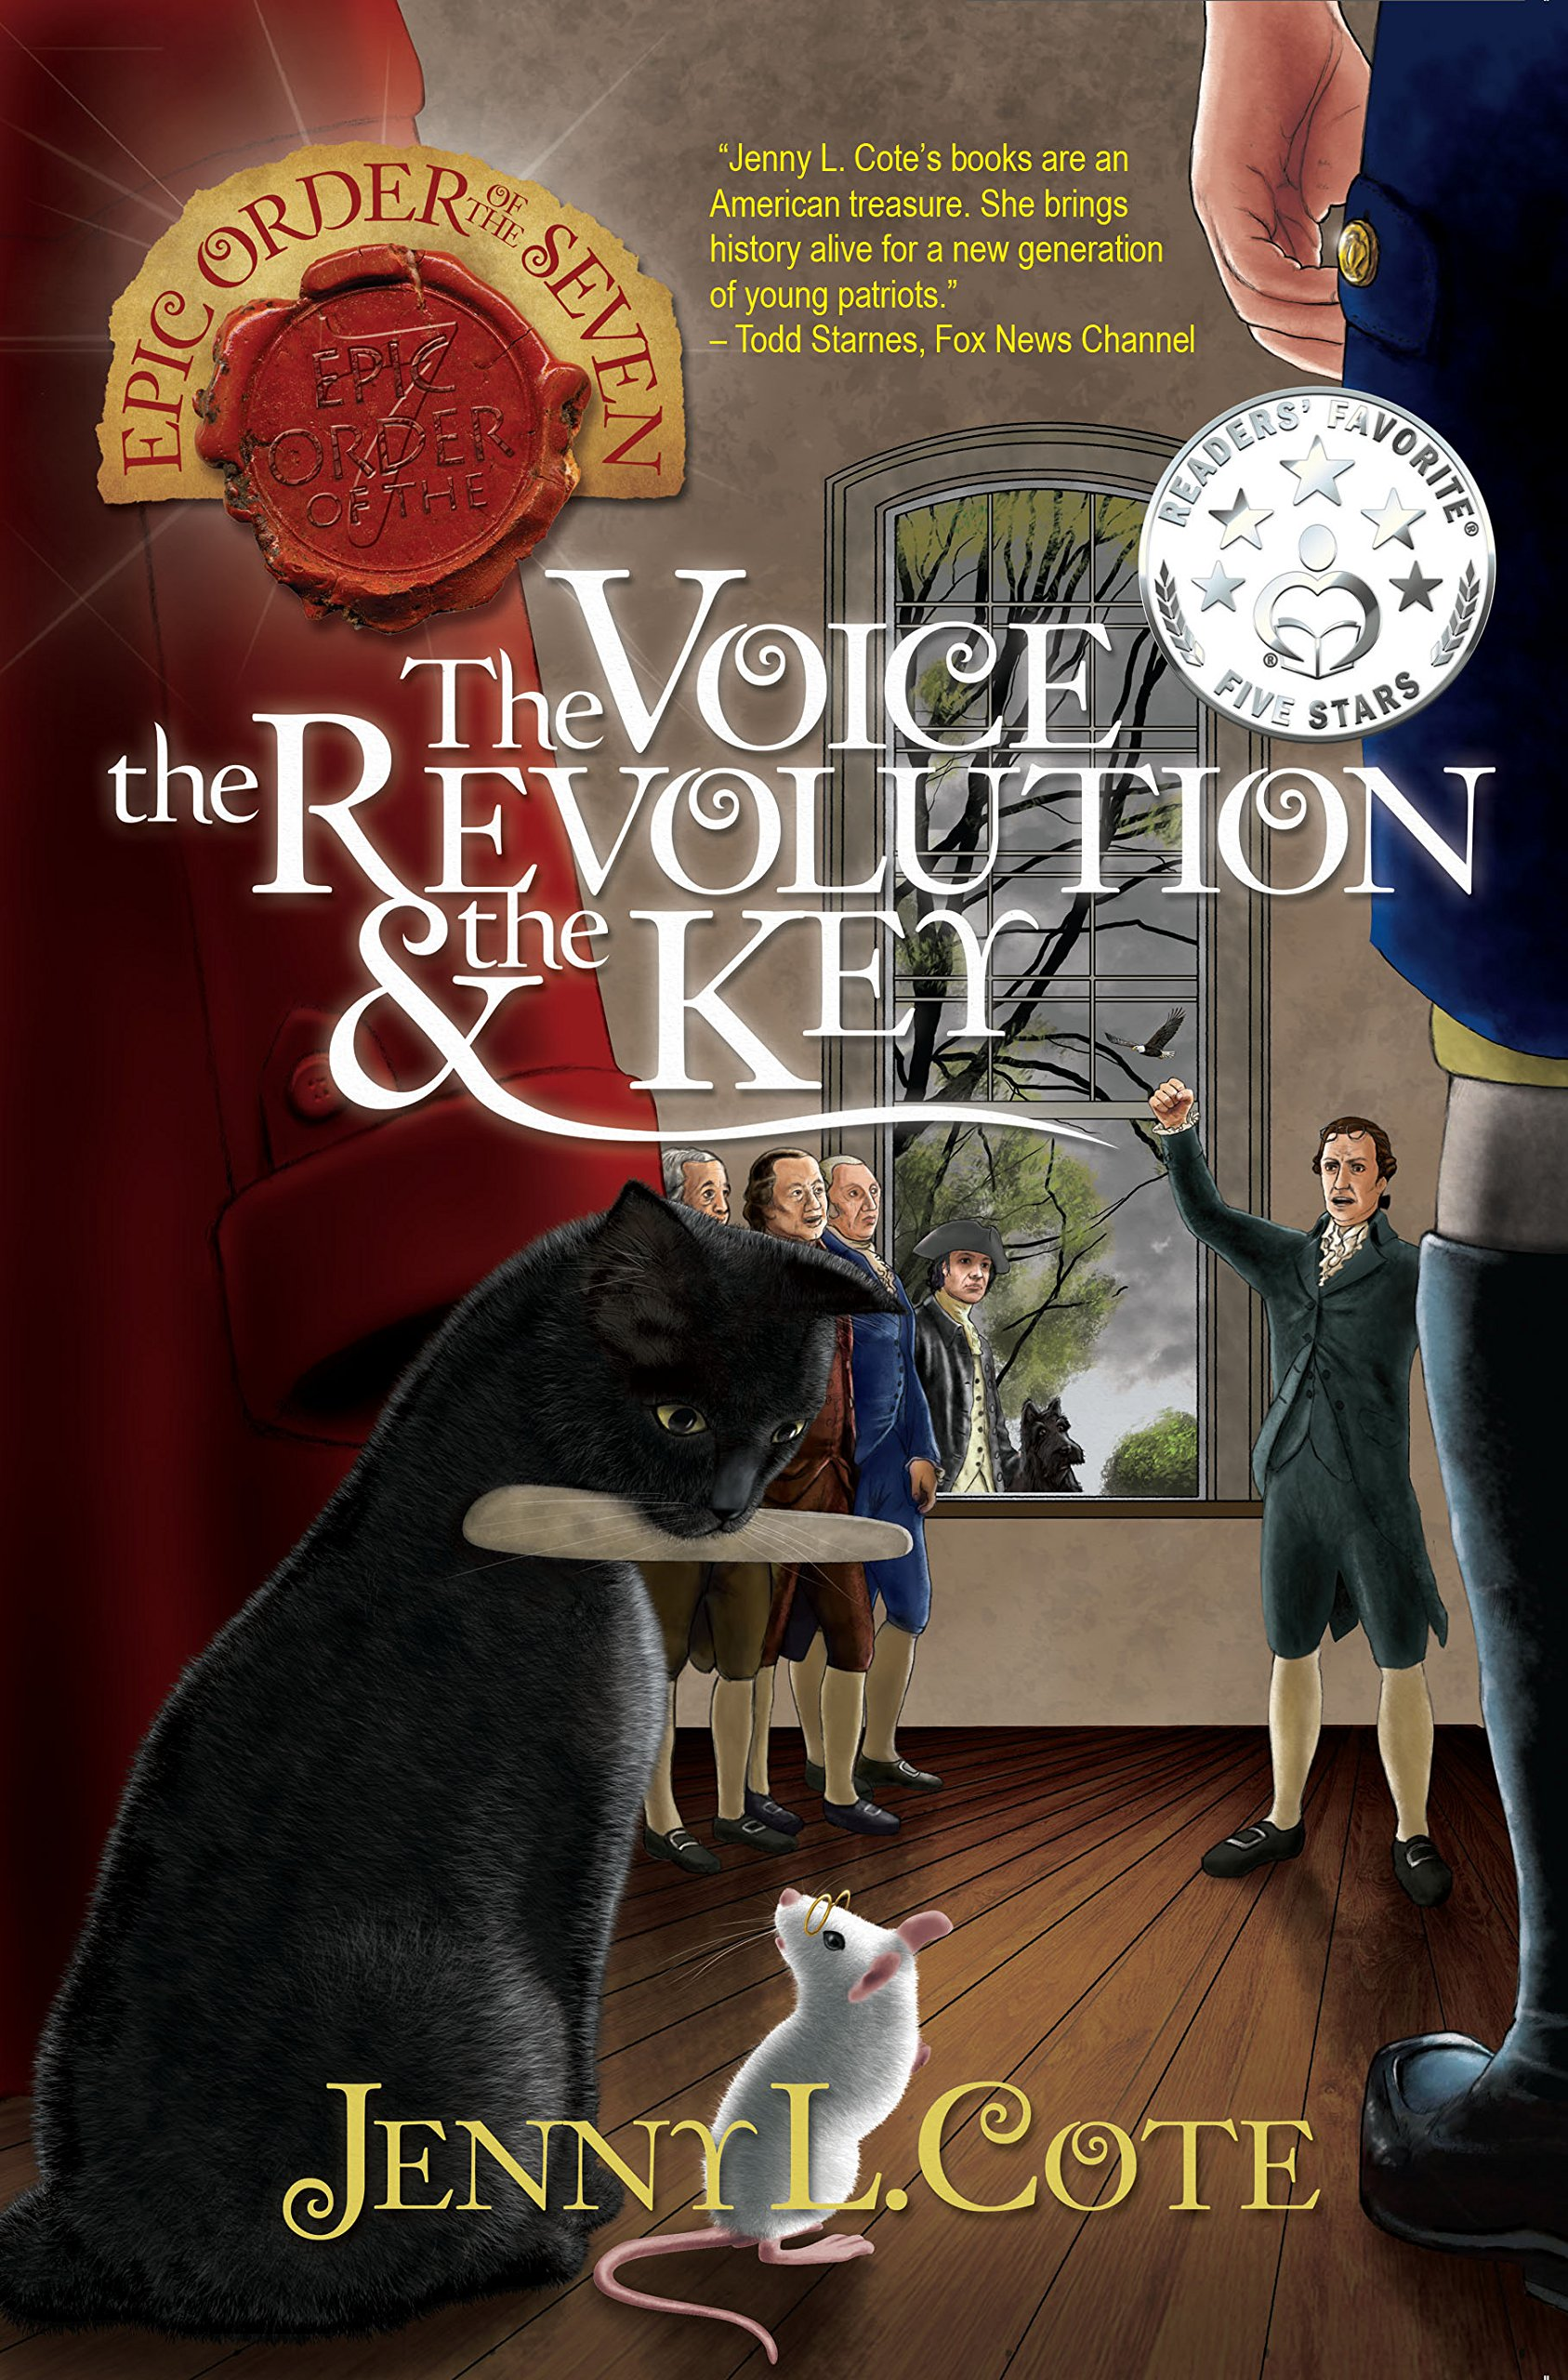 Amazon.com: The Voice, the Revolution and the Key (The Epic Order of the  Seven) (9780899577951): Jenny L. Cote: Books